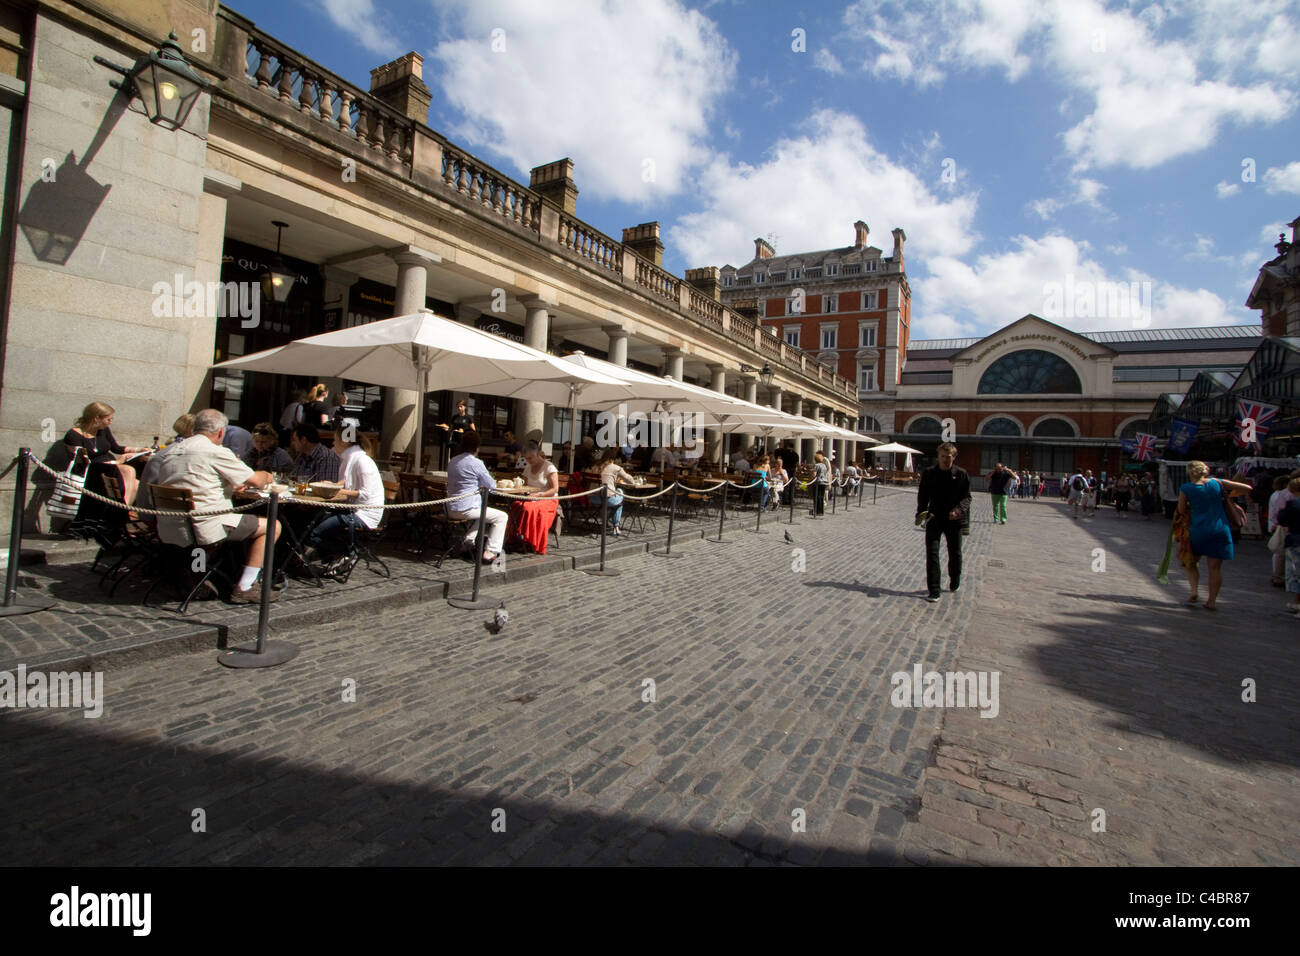 Covent garden london with diners sitting outside cafe alfresco - Stock Image